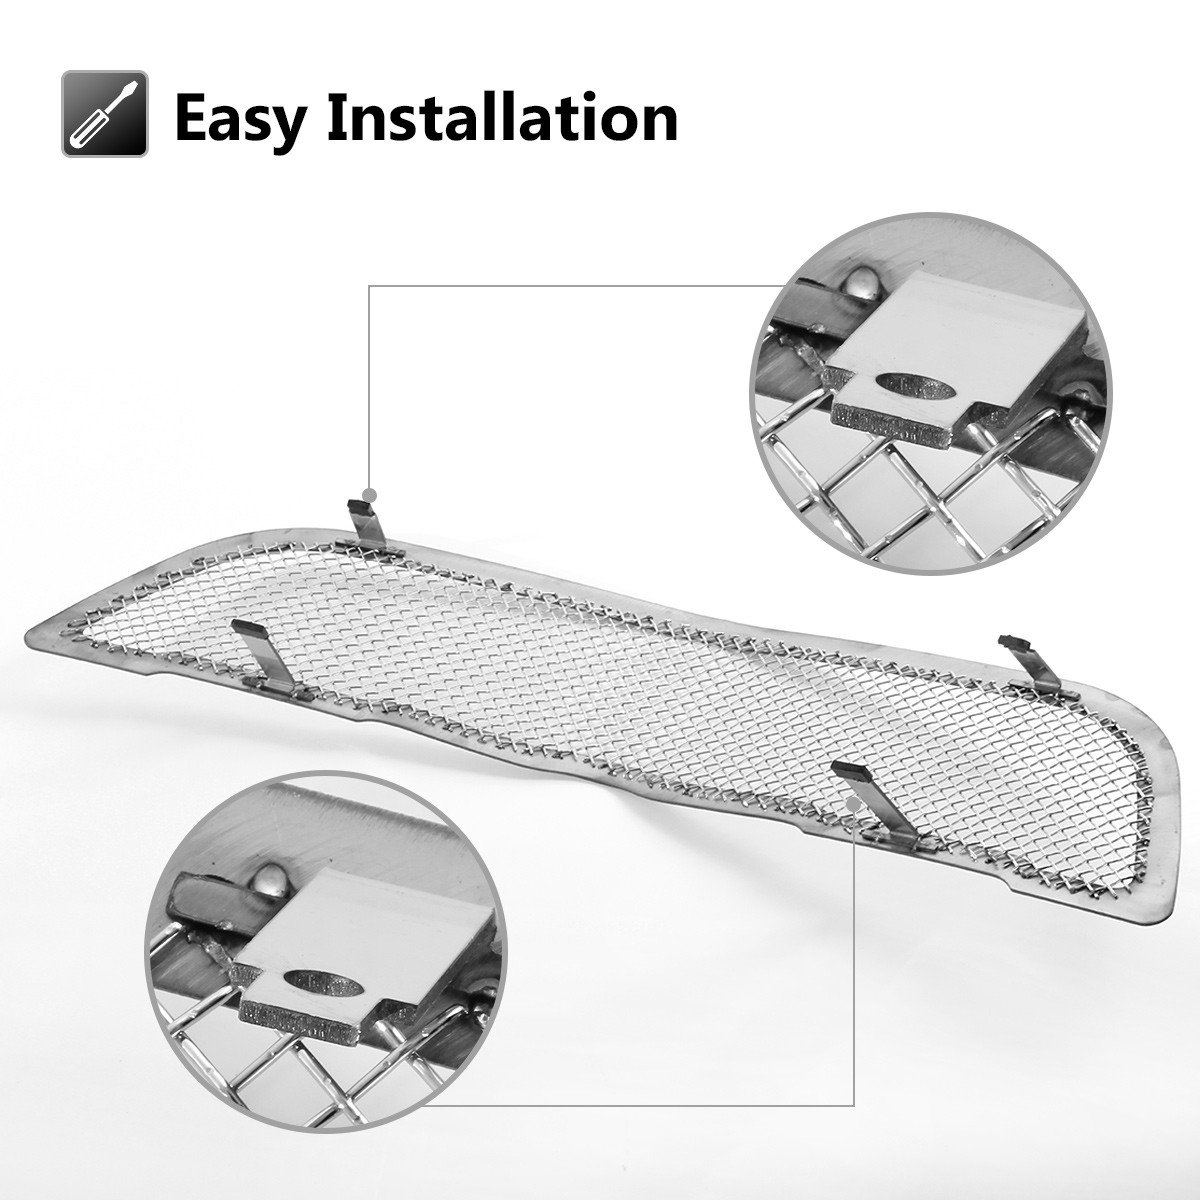 AUTEX Stainless Steel Mesh Grille Compatible With Chrysler Crossfire 2004 2005 2006 2007 2008 Grill Main Upper Replacement R76525T